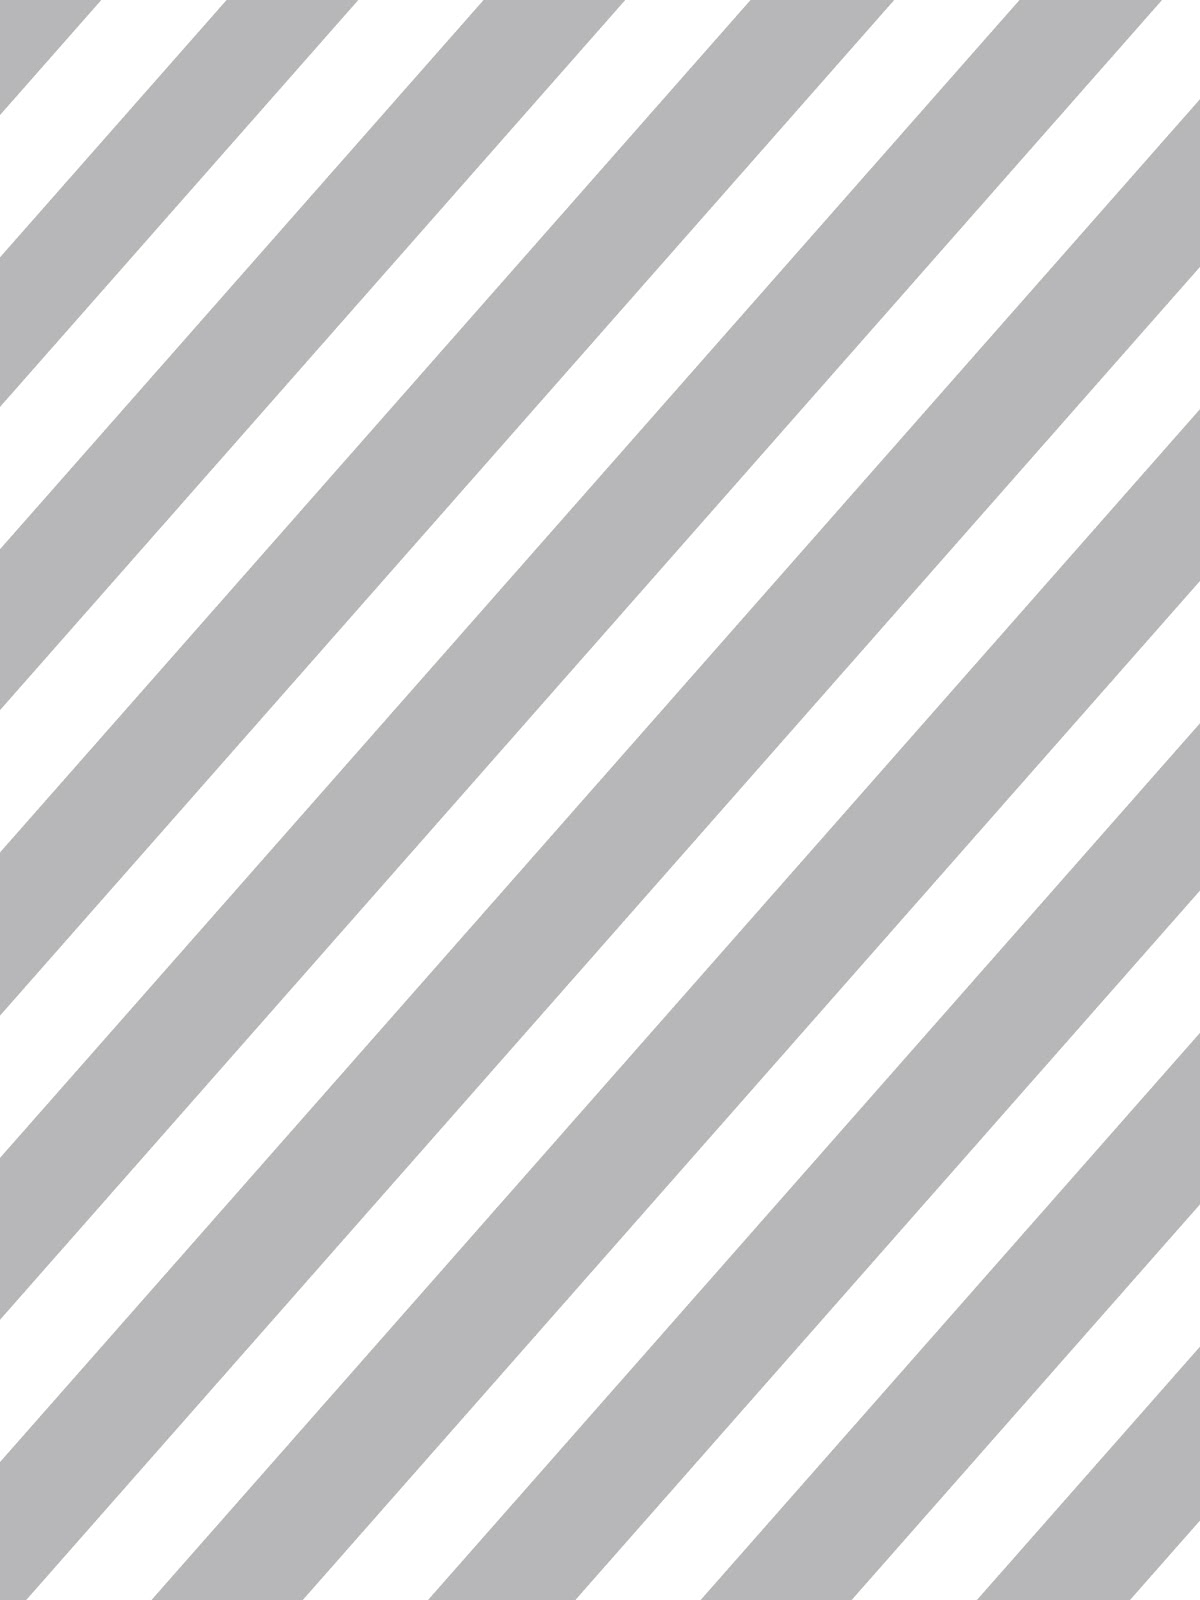 pin grey lines wallpaper - photo #36